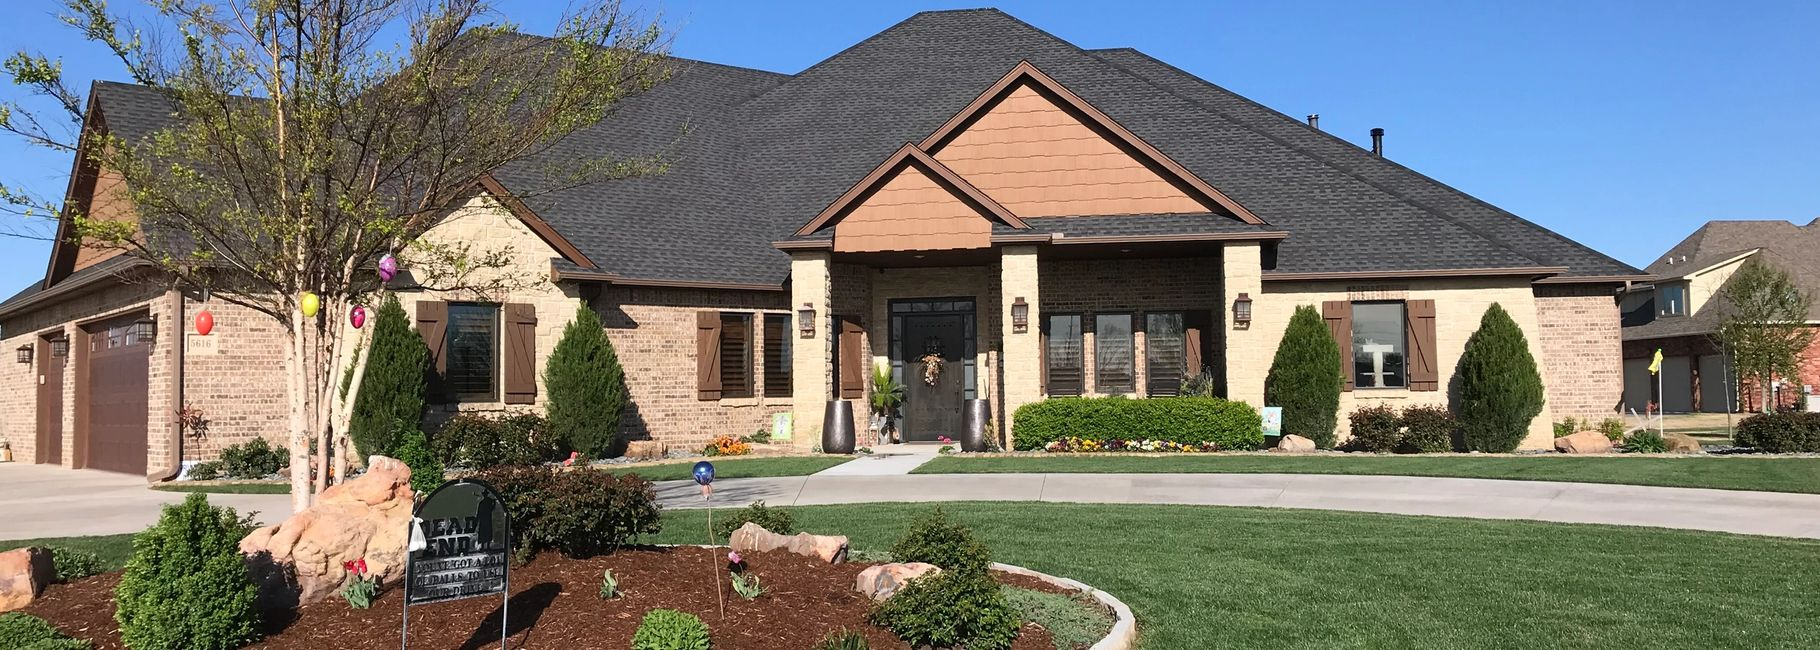 Home for Sale in Enid, Oklahoma